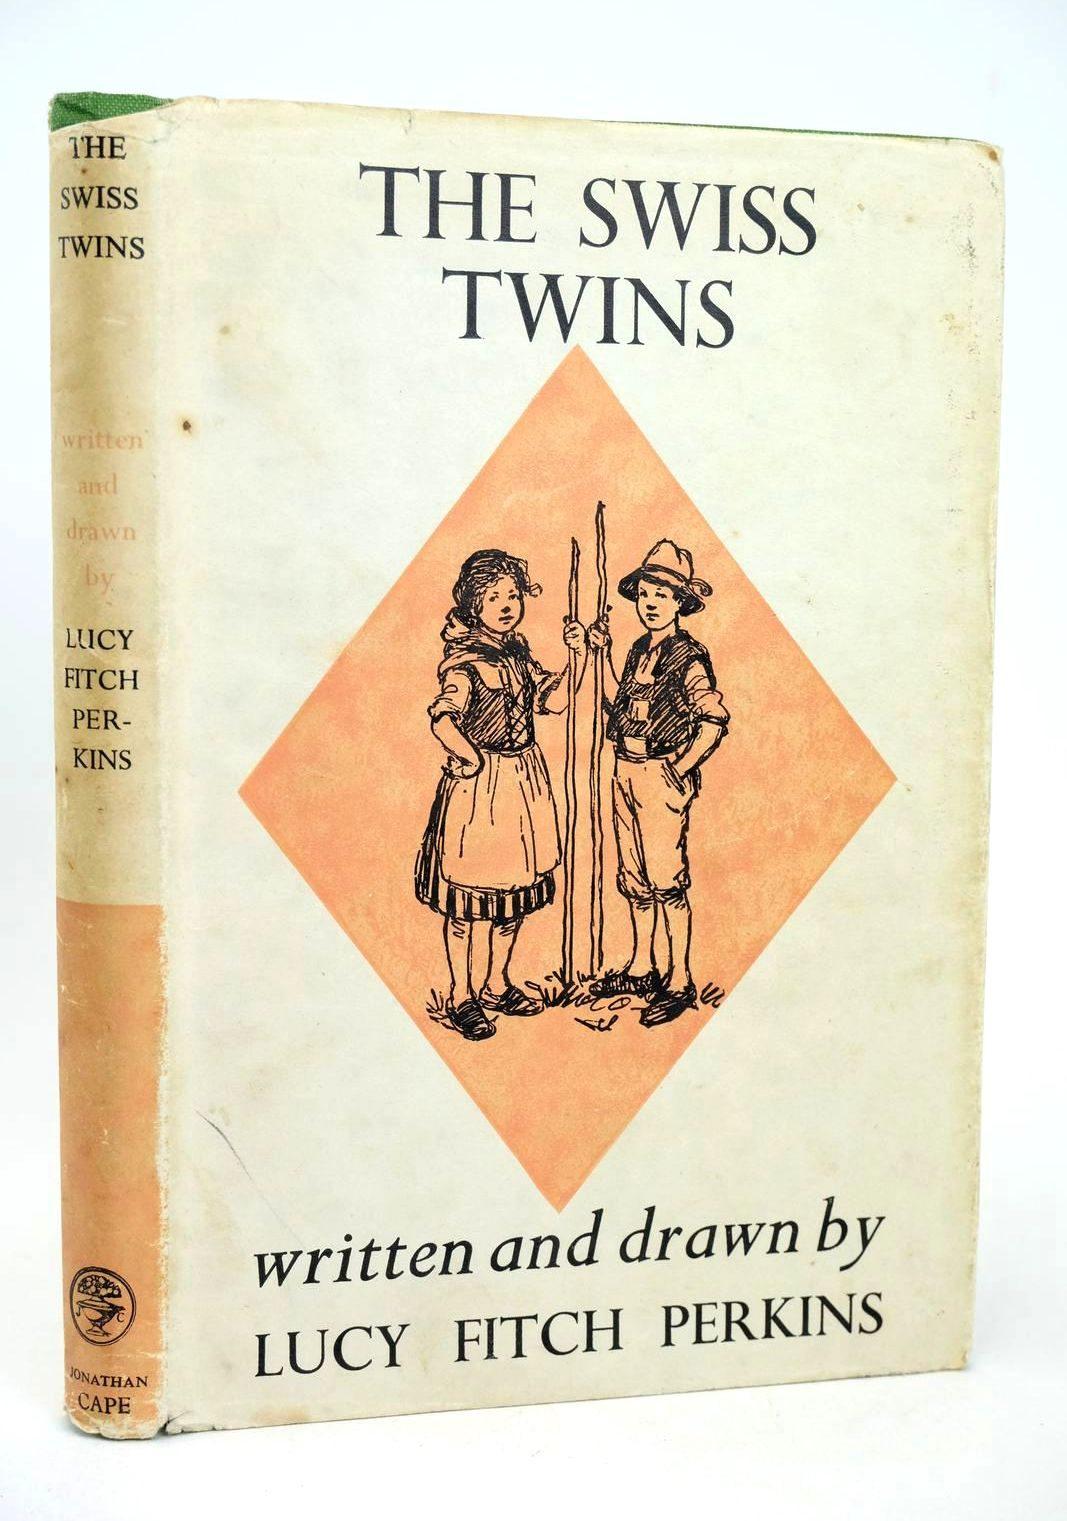 Photo of THE SWISS TWINS written by Perkins, Lucy Fitch illustrated by Perkins, Lucy Fitch published by Jonathan Cape (STOCK CODE: 1318684)  for sale by Stella & Rose's Books